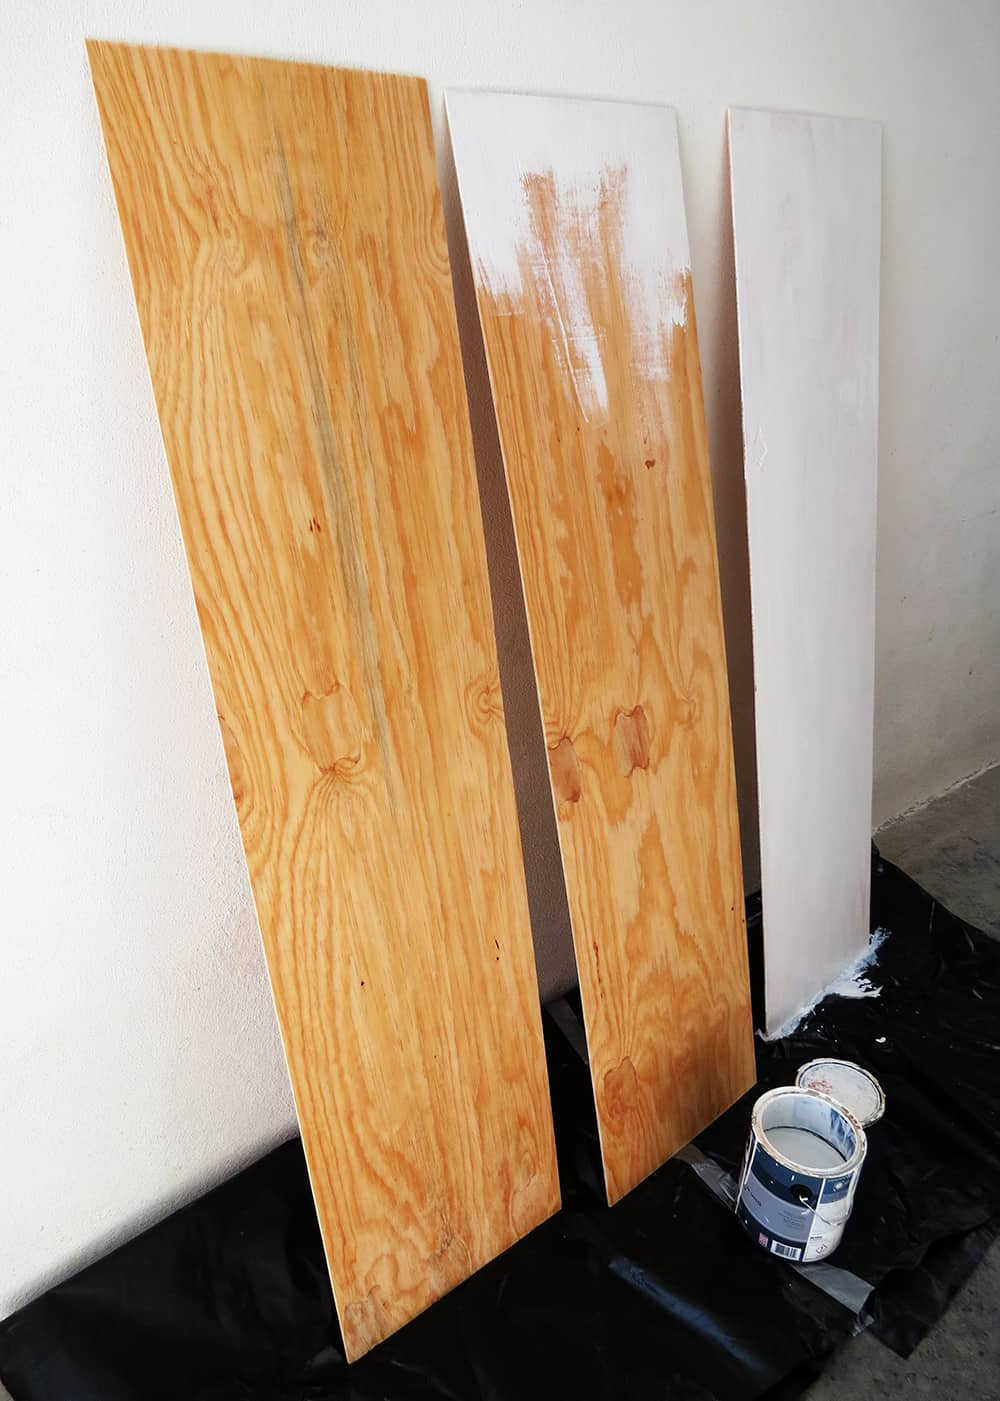 paint the divider plywood panels